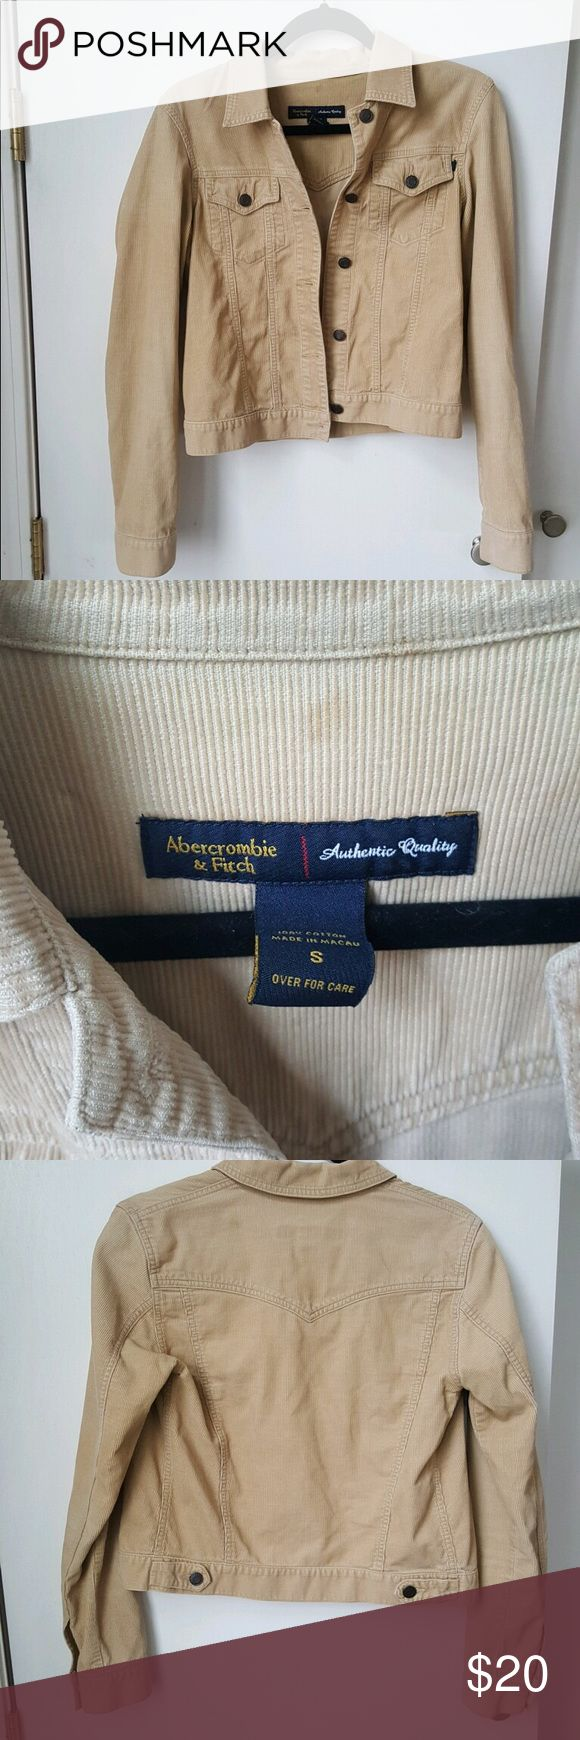 Abercrombie and Fitch corduroy jacket The jacket is in great condition Abercrombie & Fitch Jackets & Coats Jean Jackets